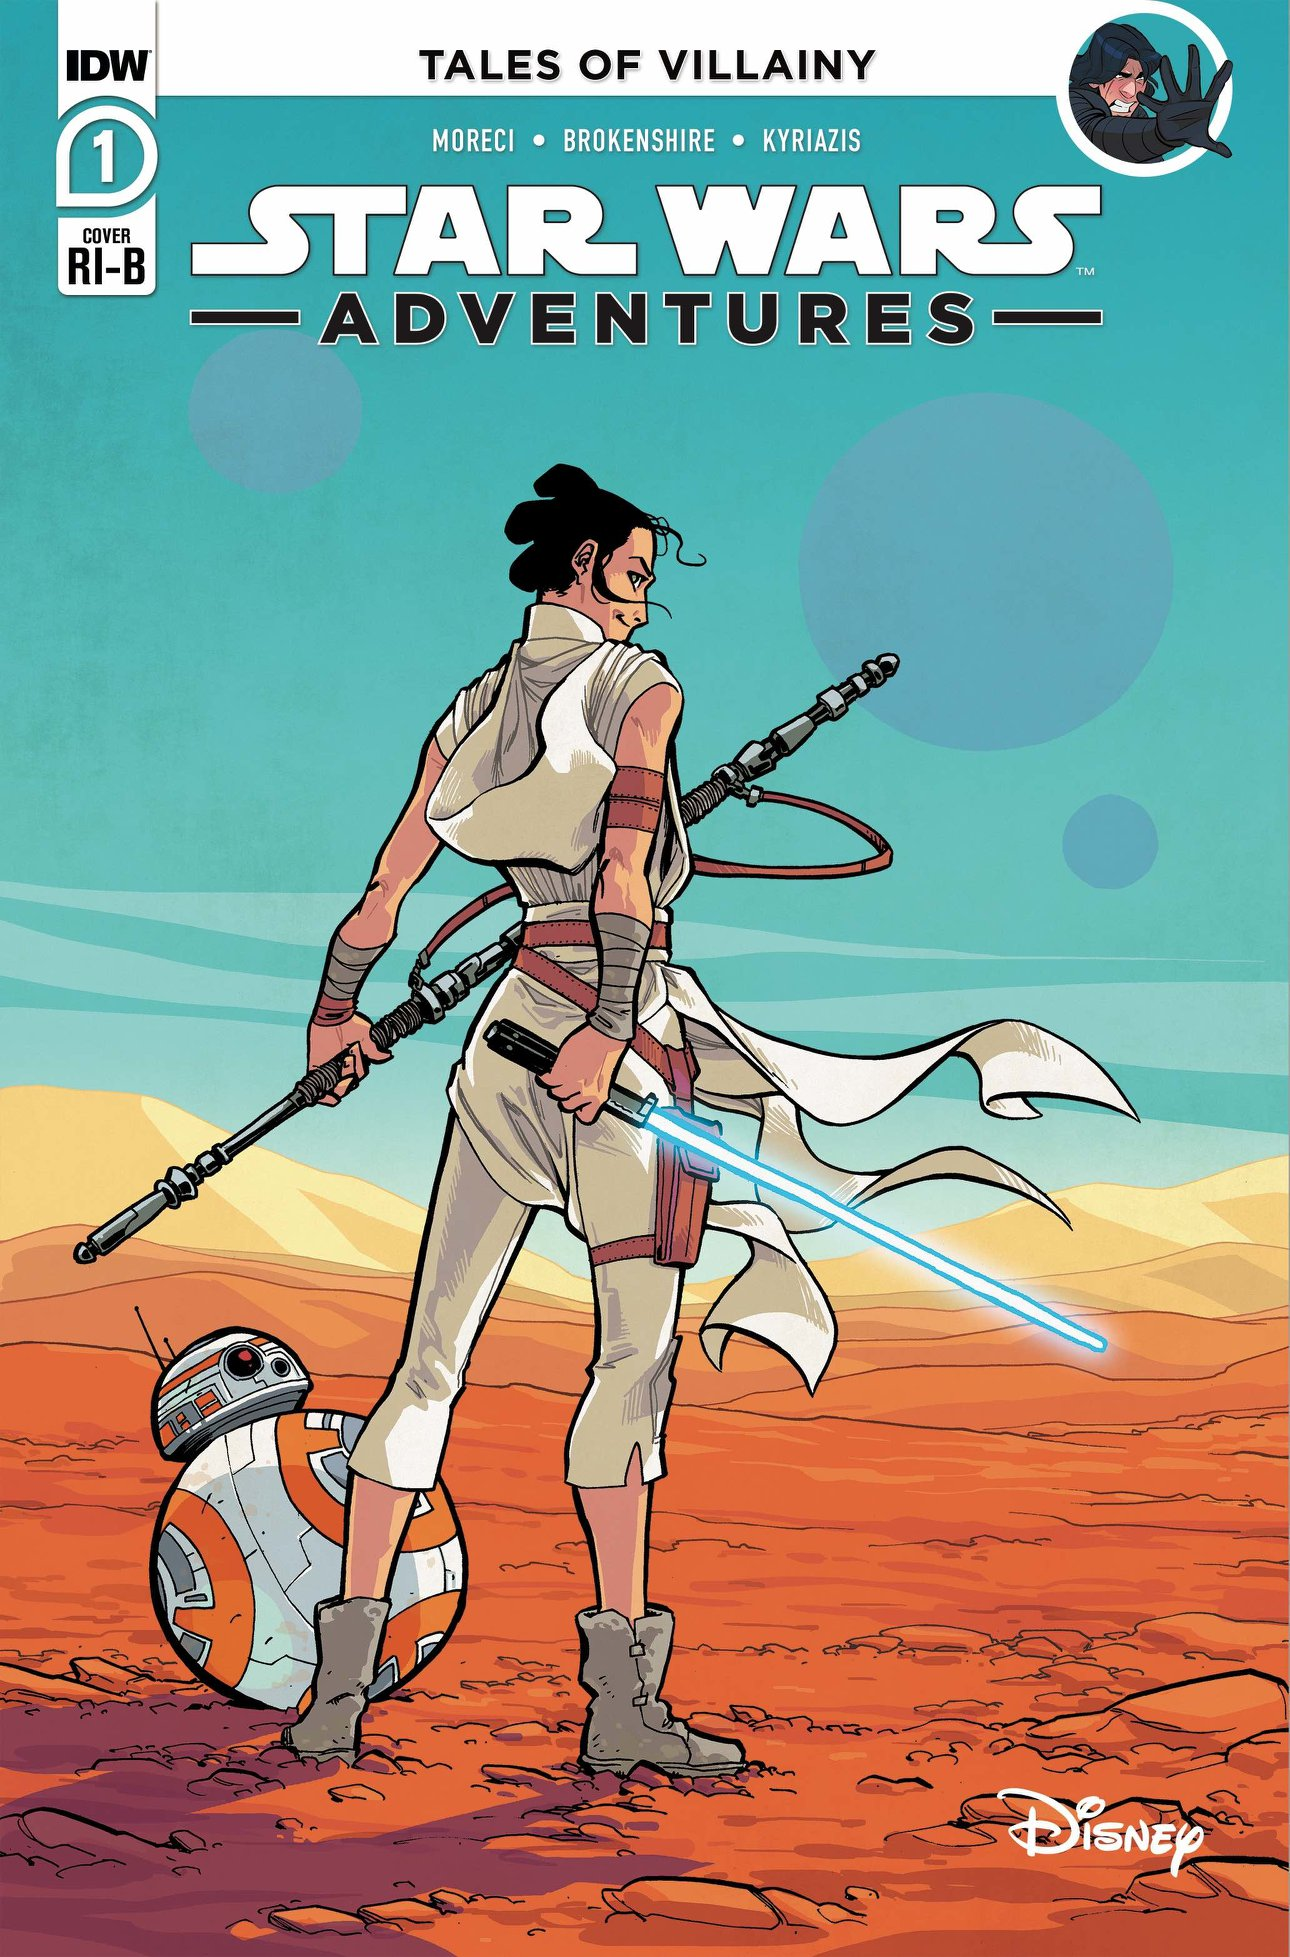 Star Wars Adventures 1 (IDW 2020) - Cover B Brokenshire